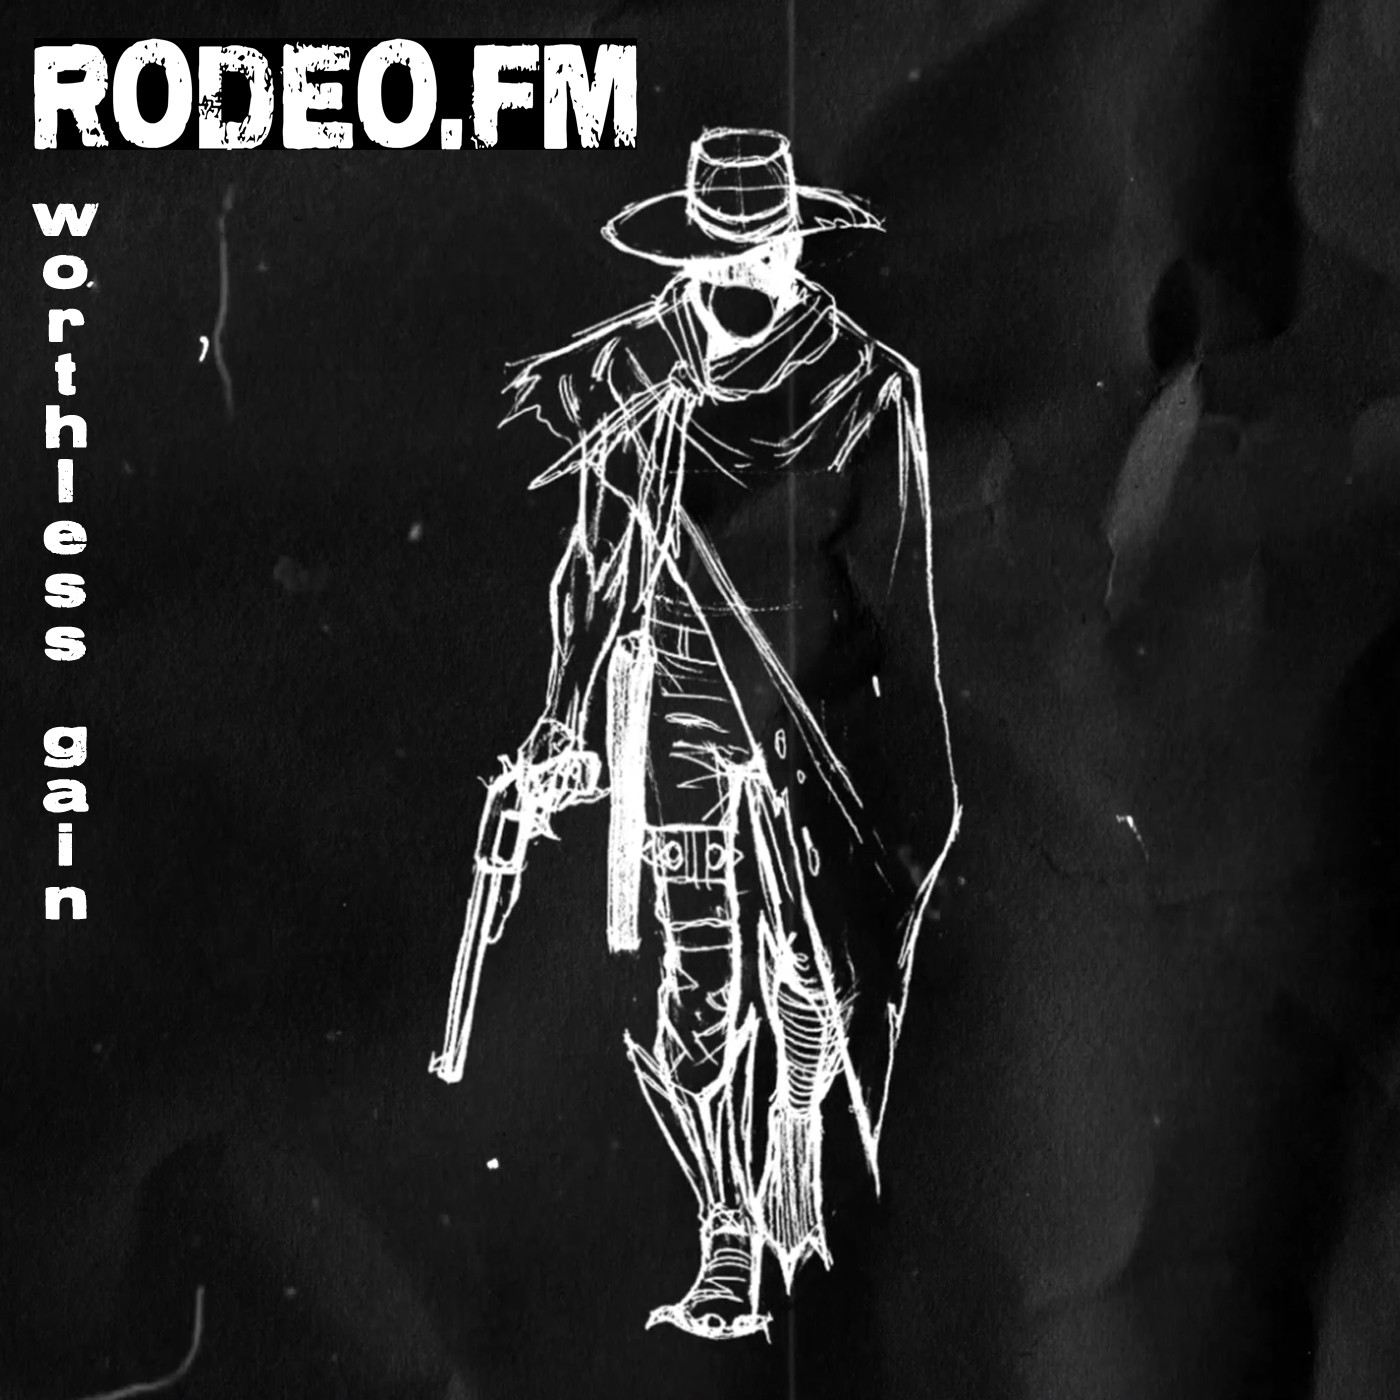 Rodeo FM - Worthless Gain